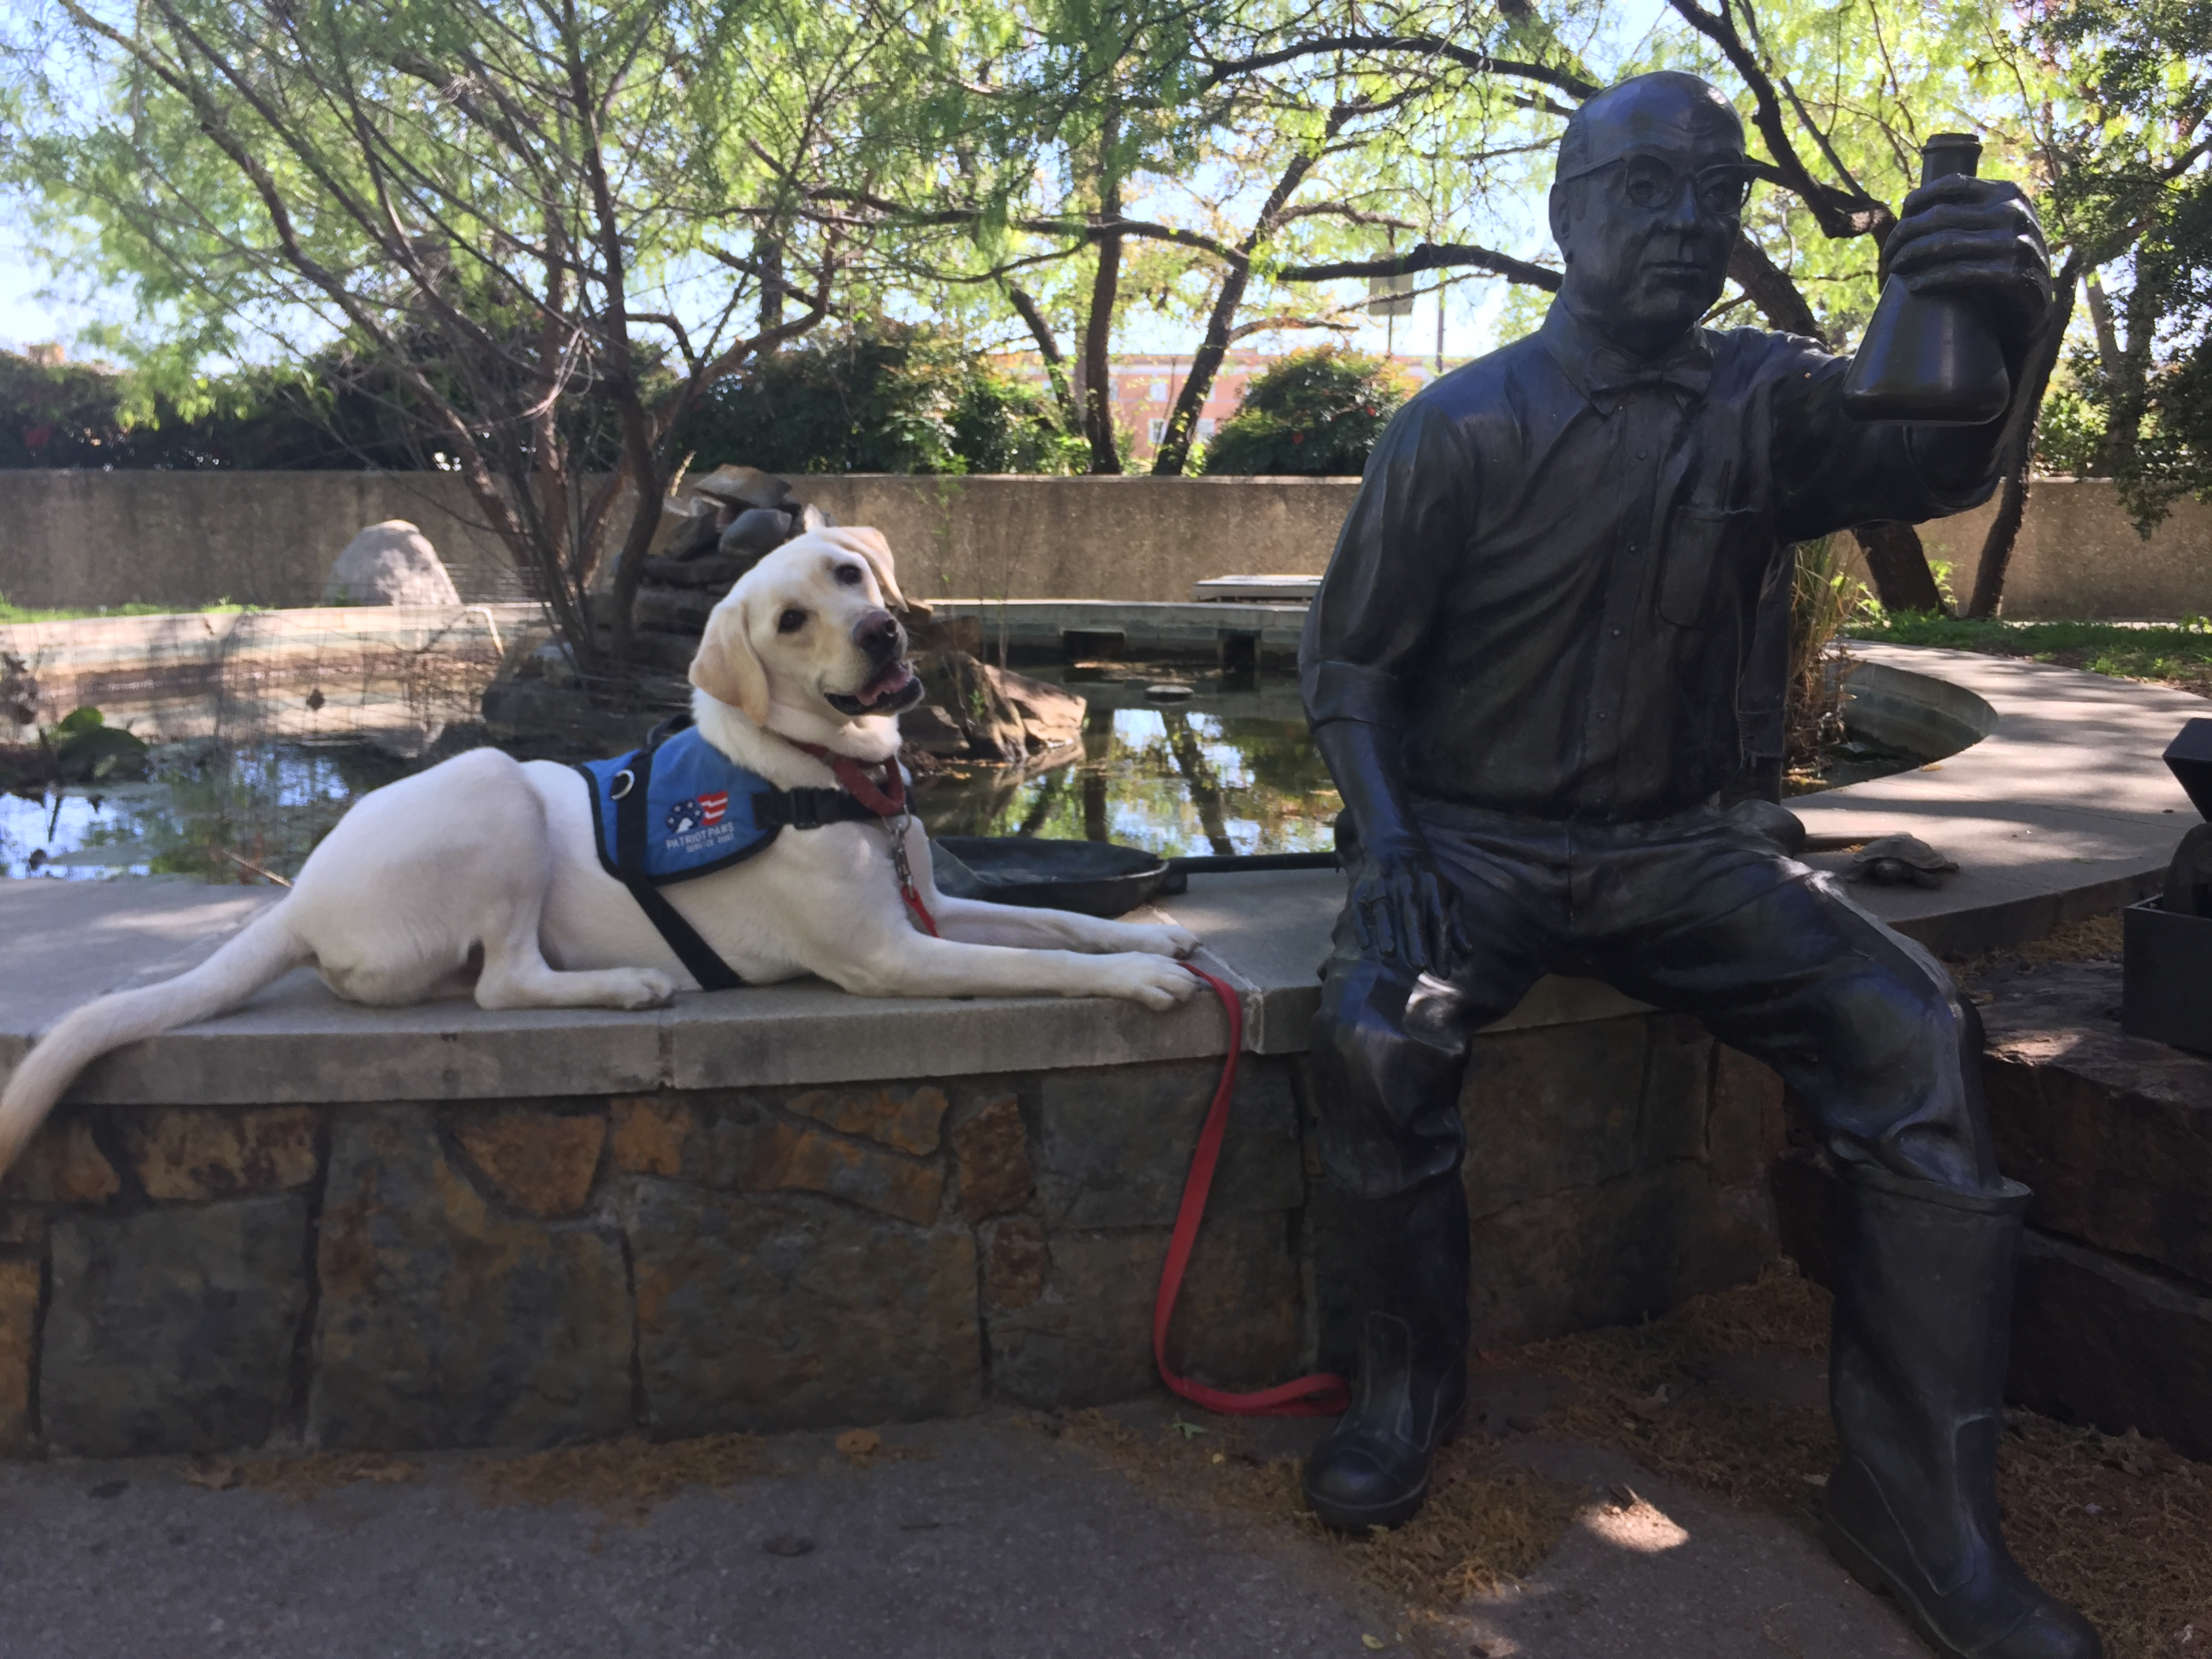 Drill Bit the Labrador retriever, posing on the UNT campus